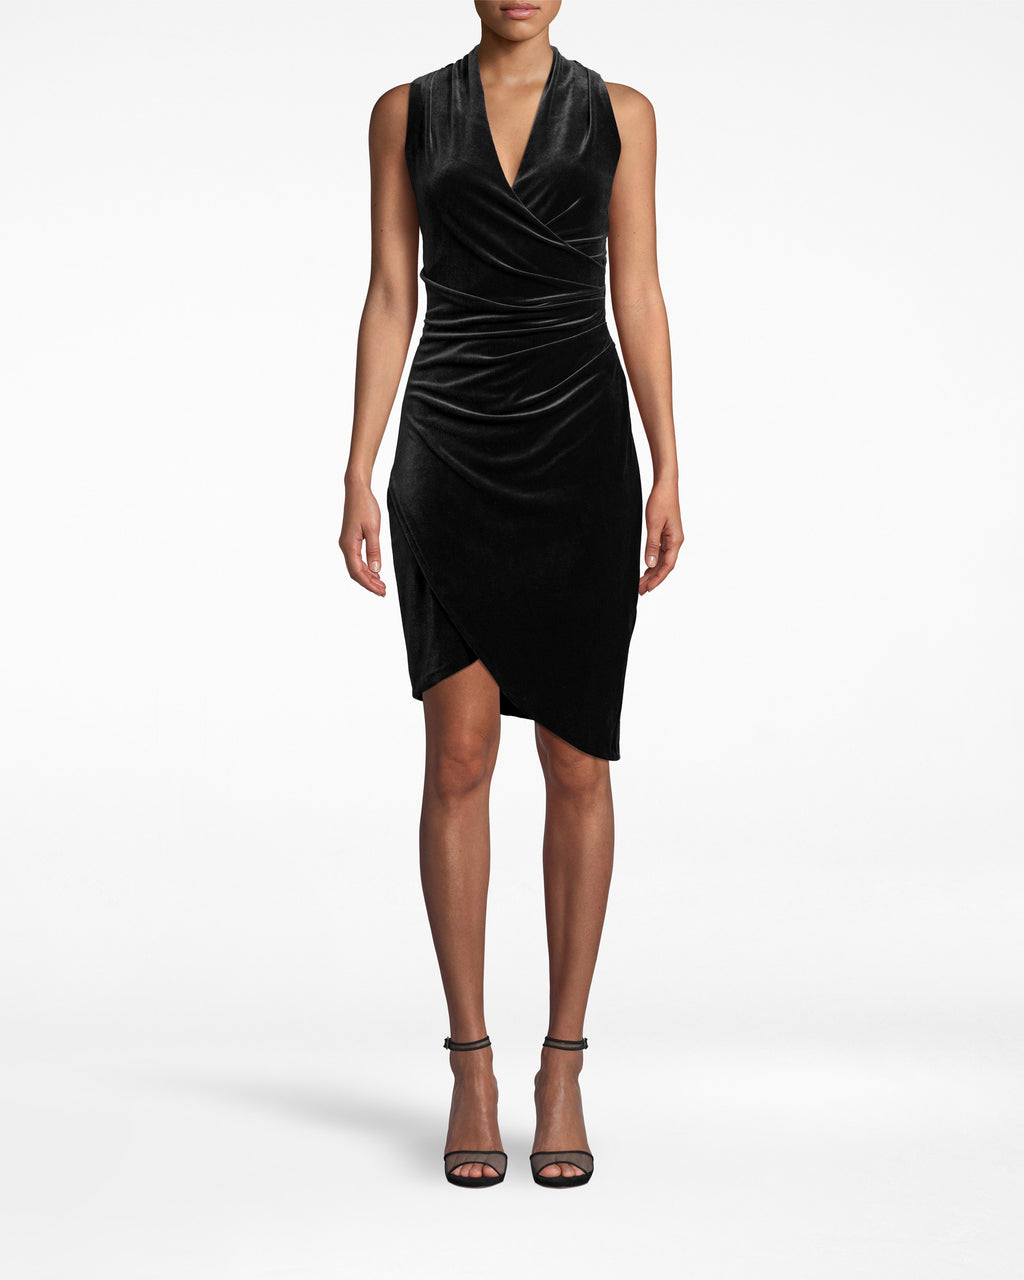 BK20020 - STRETCH VELVET STEFANIE DRESS - dresses - short - The chic Stefanie. The fabric gathering on this velvet sleeveless dress adds unique structure. The hem is asymmetrical, with the left side hitting just above the knee and the right a few inches above. Exposed back zipper for closure.